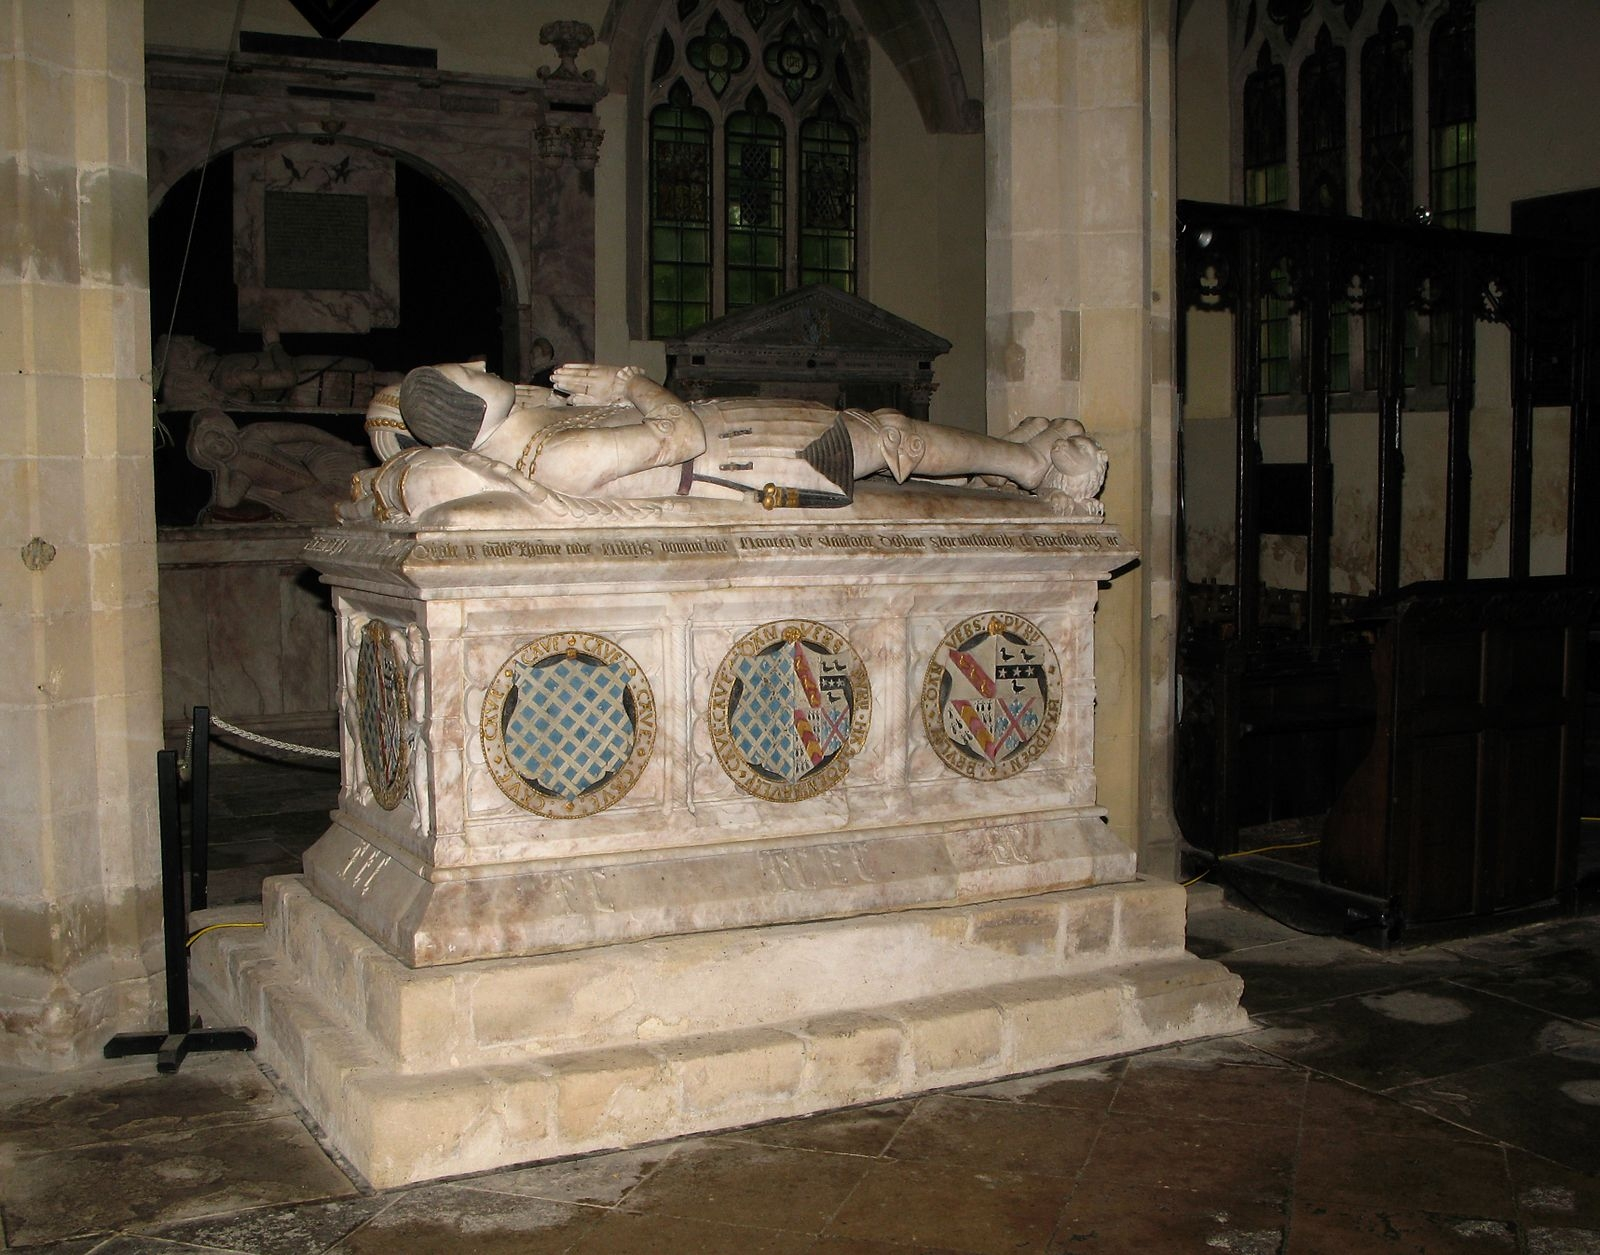 1558 - Memorial of Sir Thomas Cave and Elizabeth cave d.1558